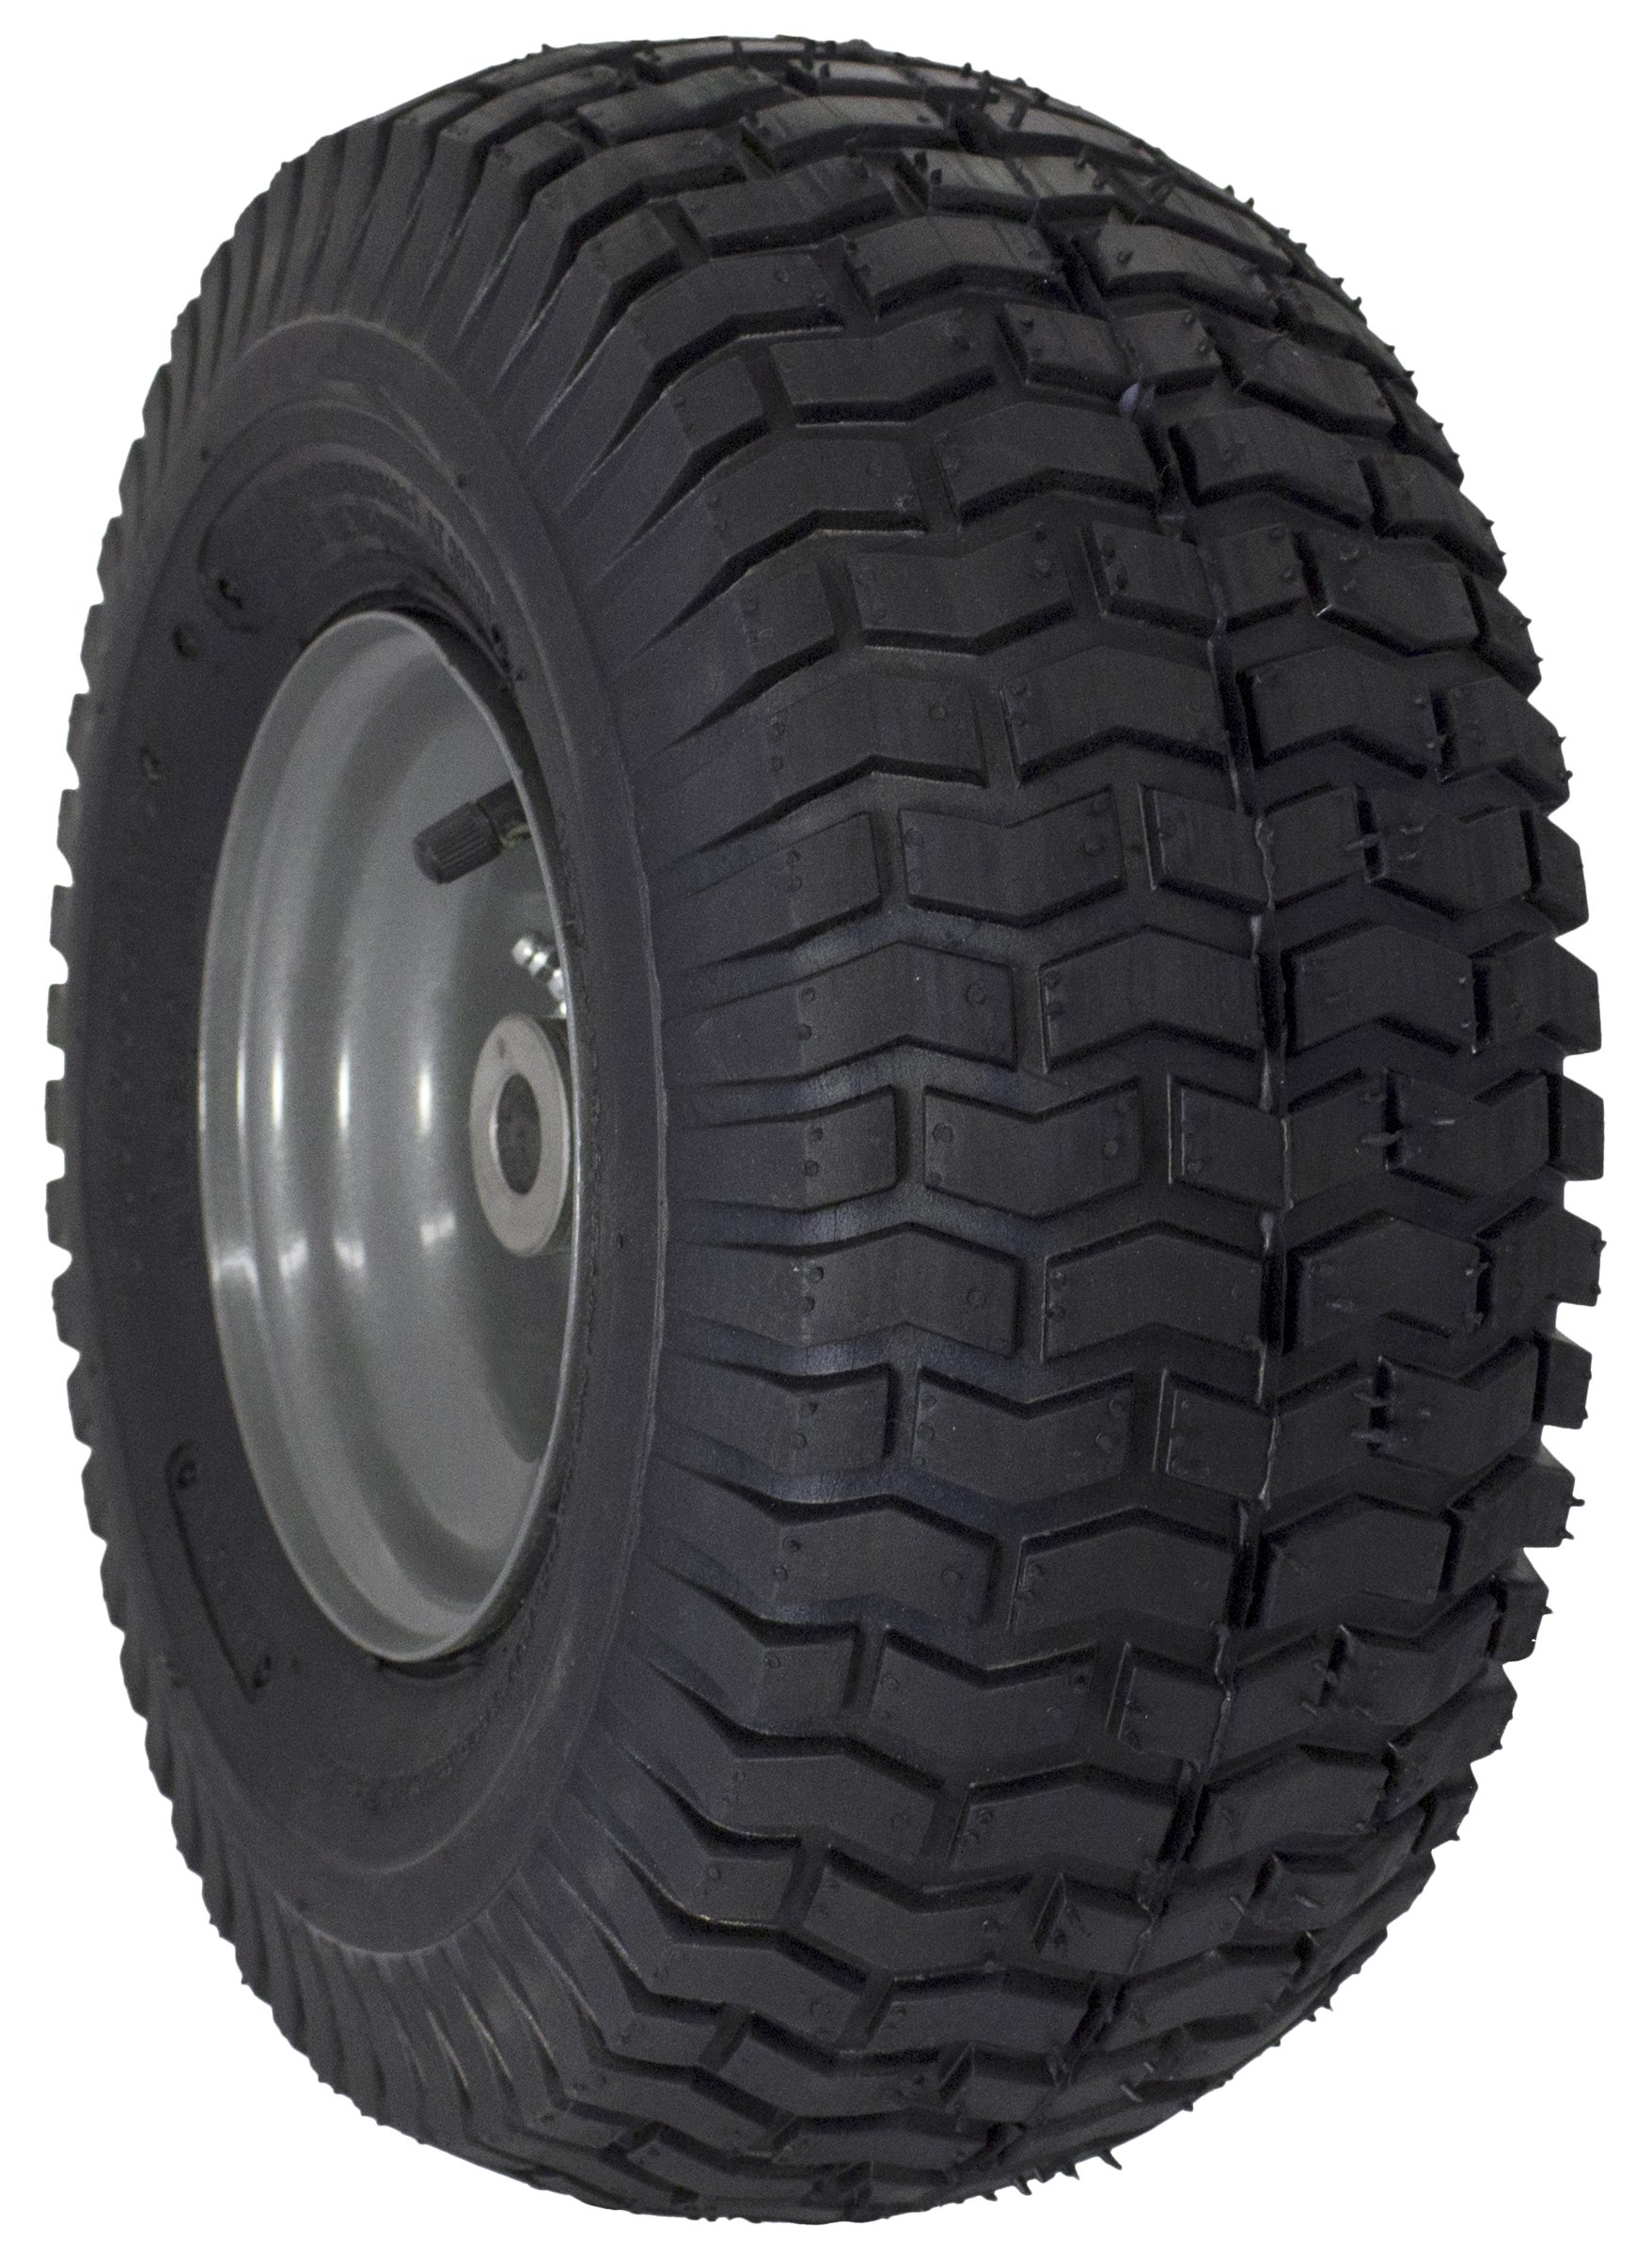 MARASTAR 15x6.00-6'' Front Tire Assembly Replacement for Craftsman Riding Mowers (21446)